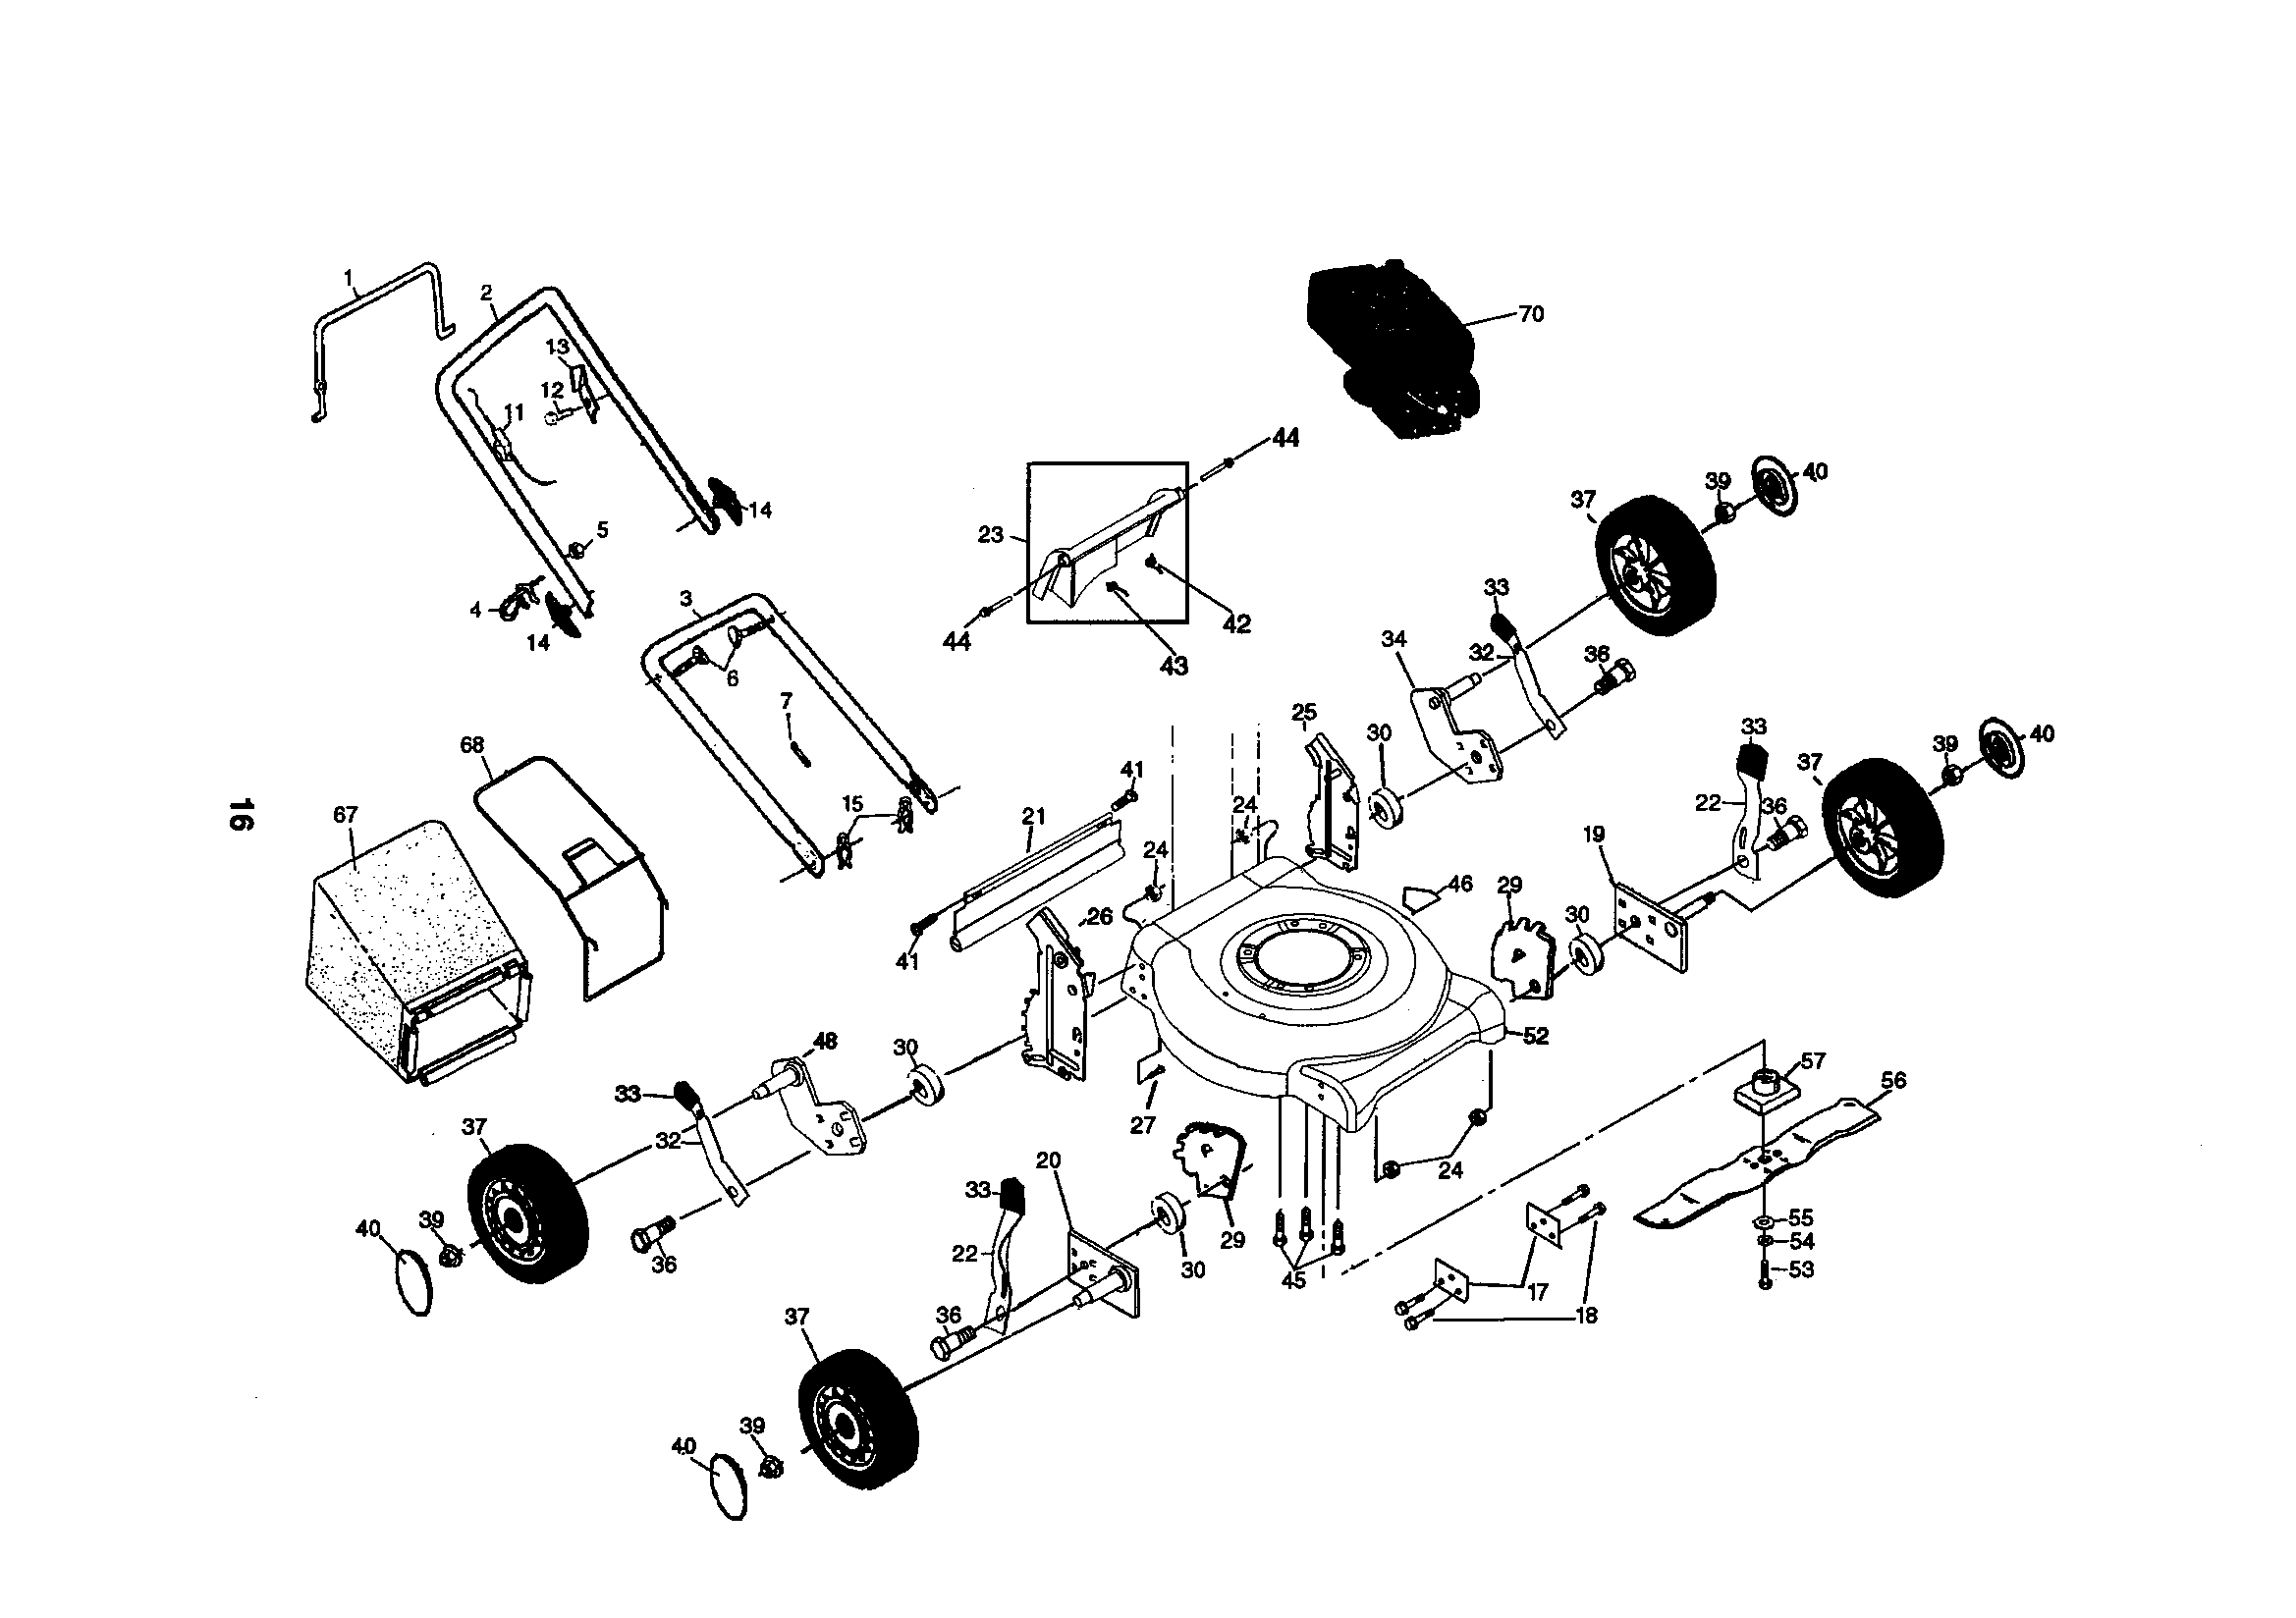 6 5 Hp Ohv Engine Toro OHV Engine Wiring Diagram ~ Odicis